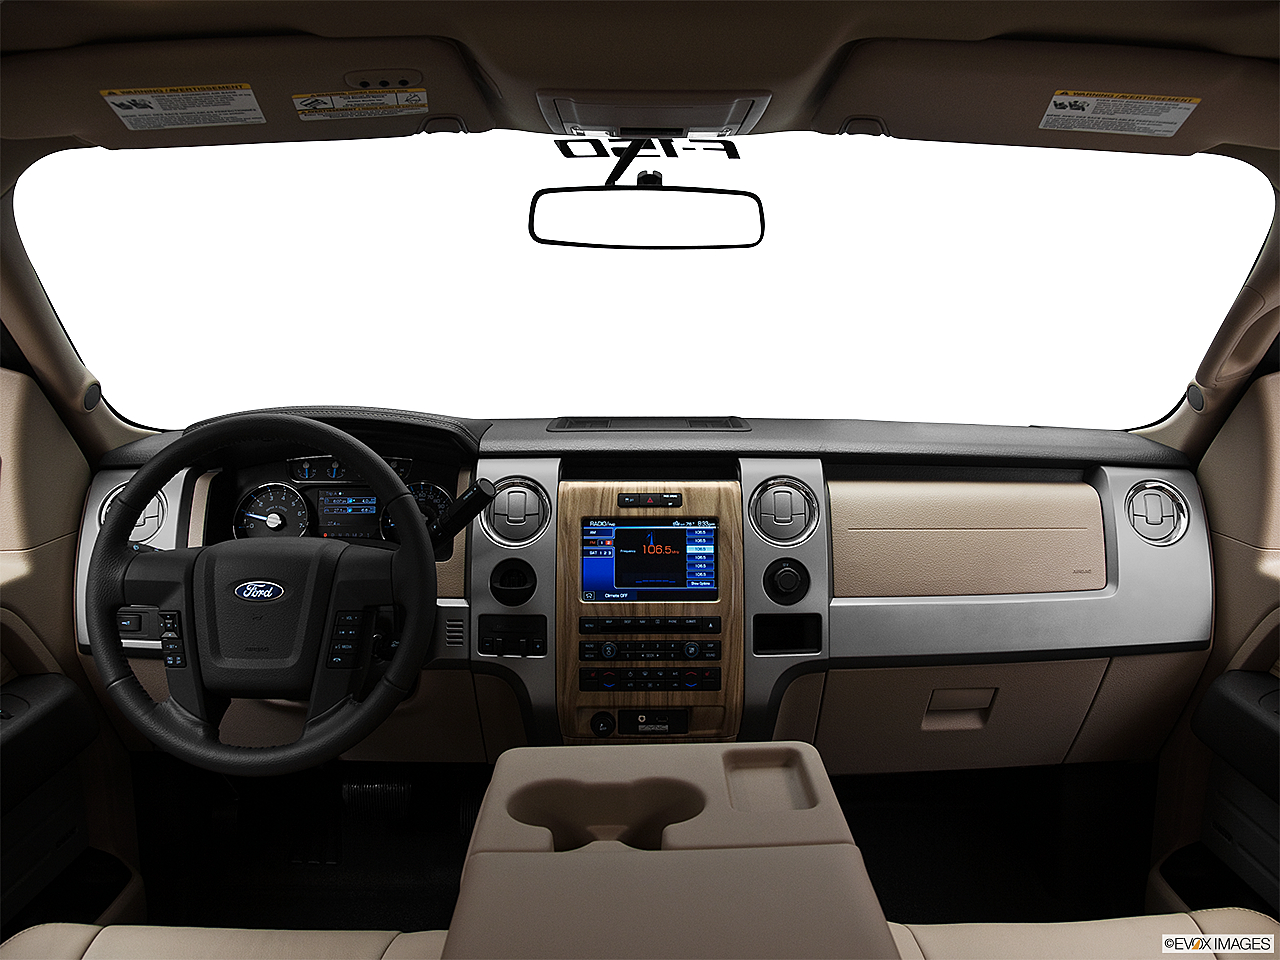 2011 Ford F-150 Lariat, centered wide dash shot